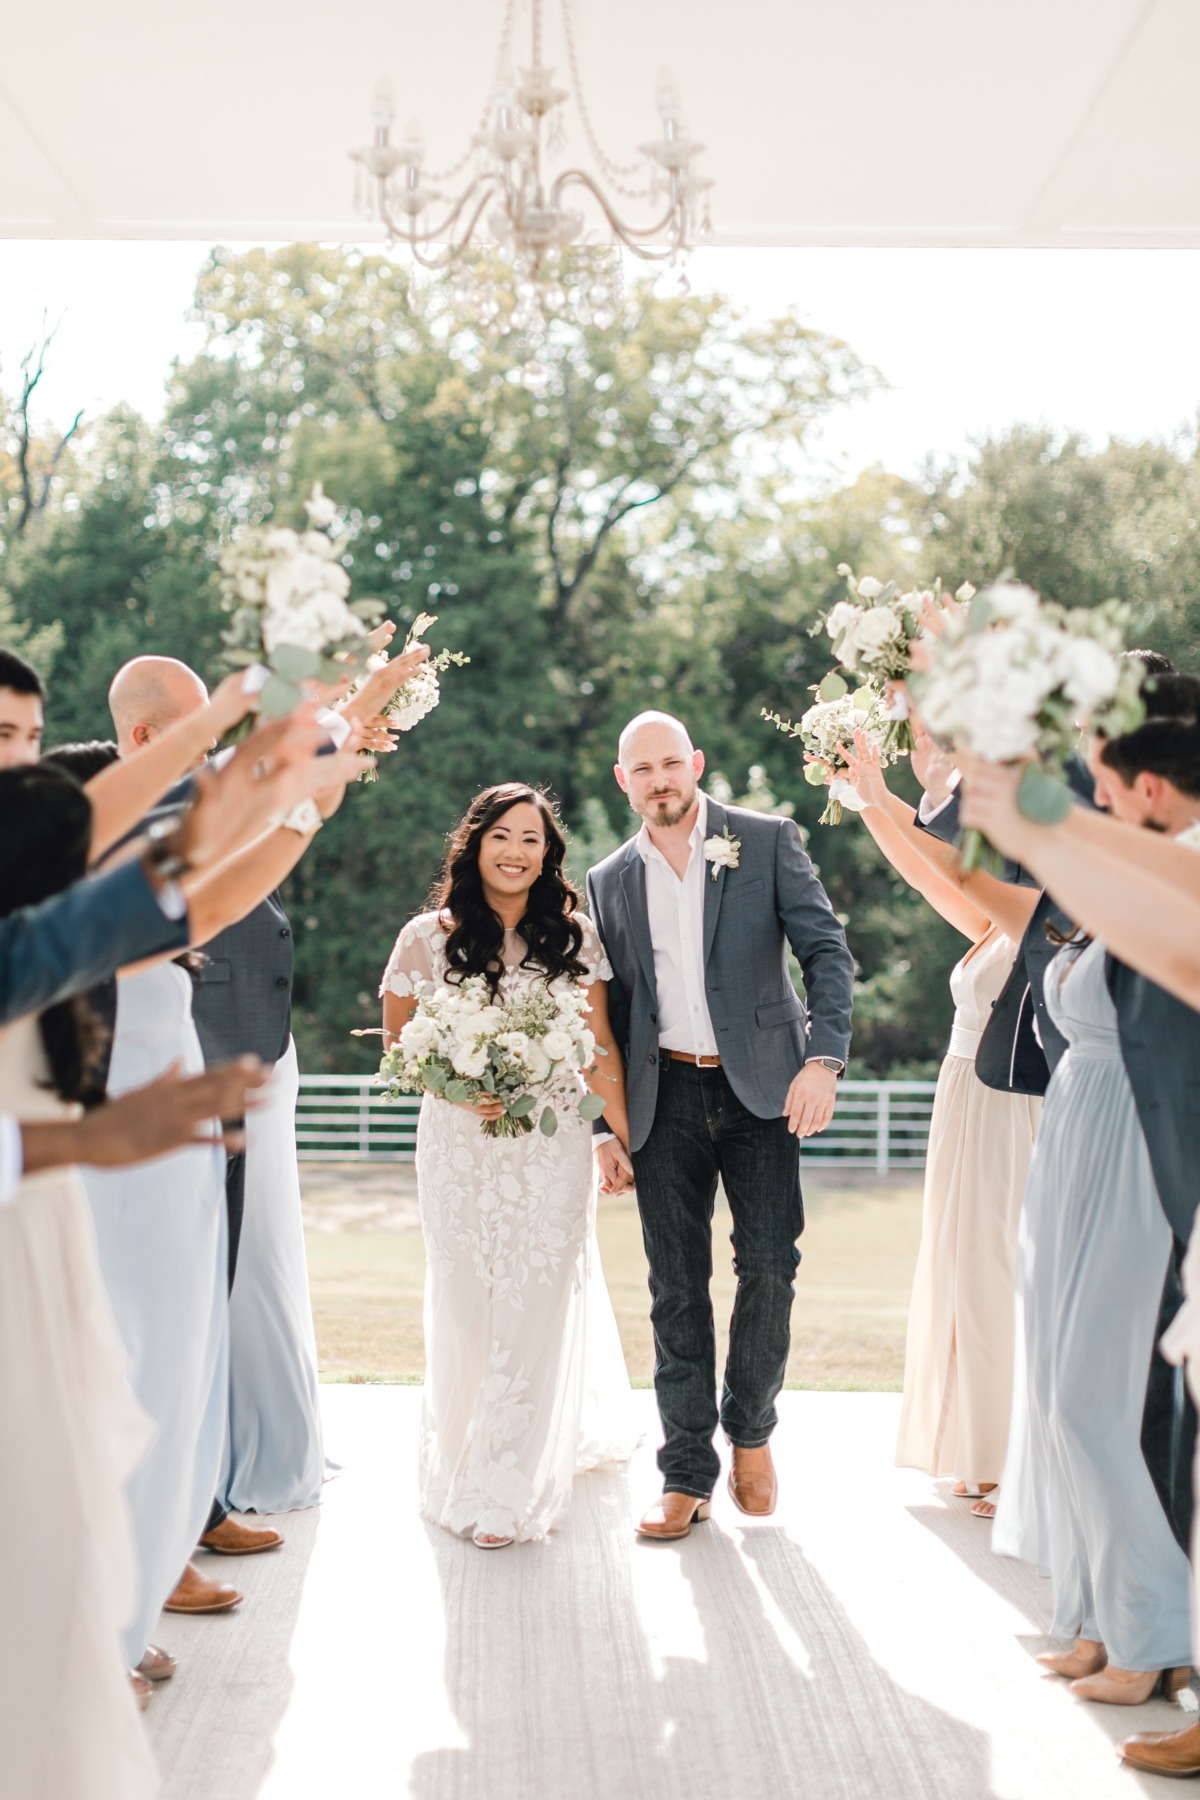 Romantic Countryside Destination Wedding at the Firefly Gardens